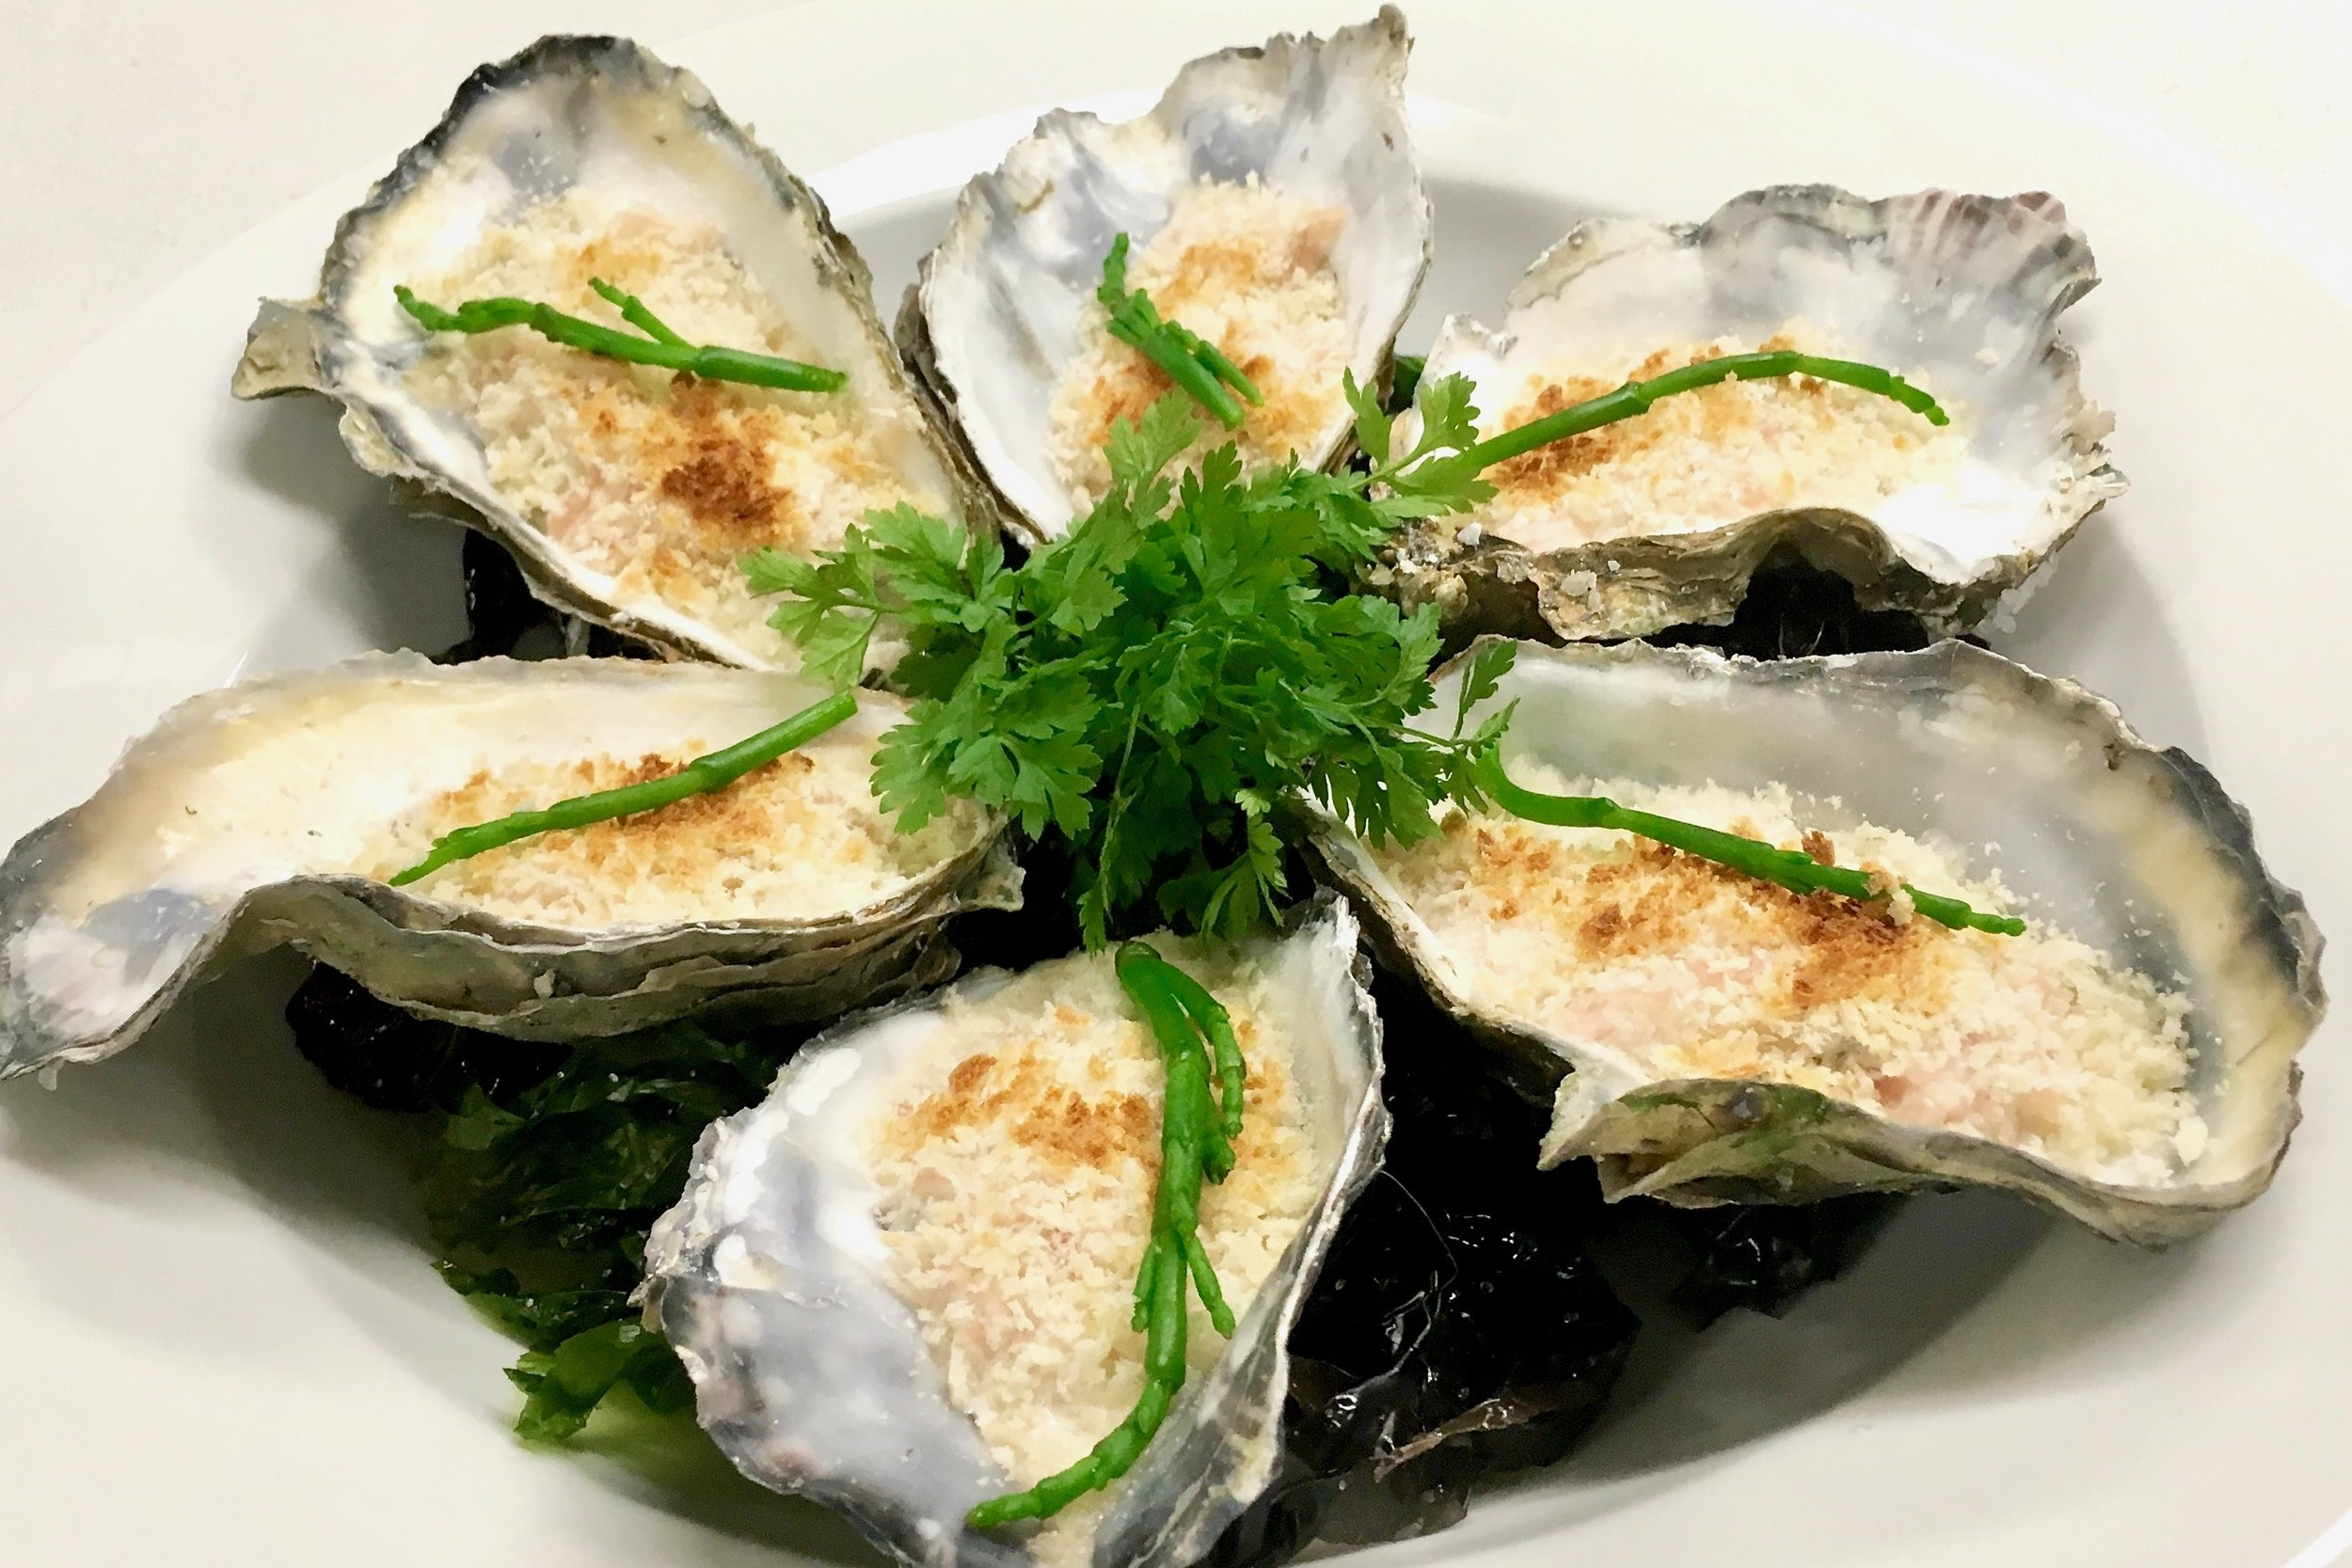 Warm Brittany-style oysters